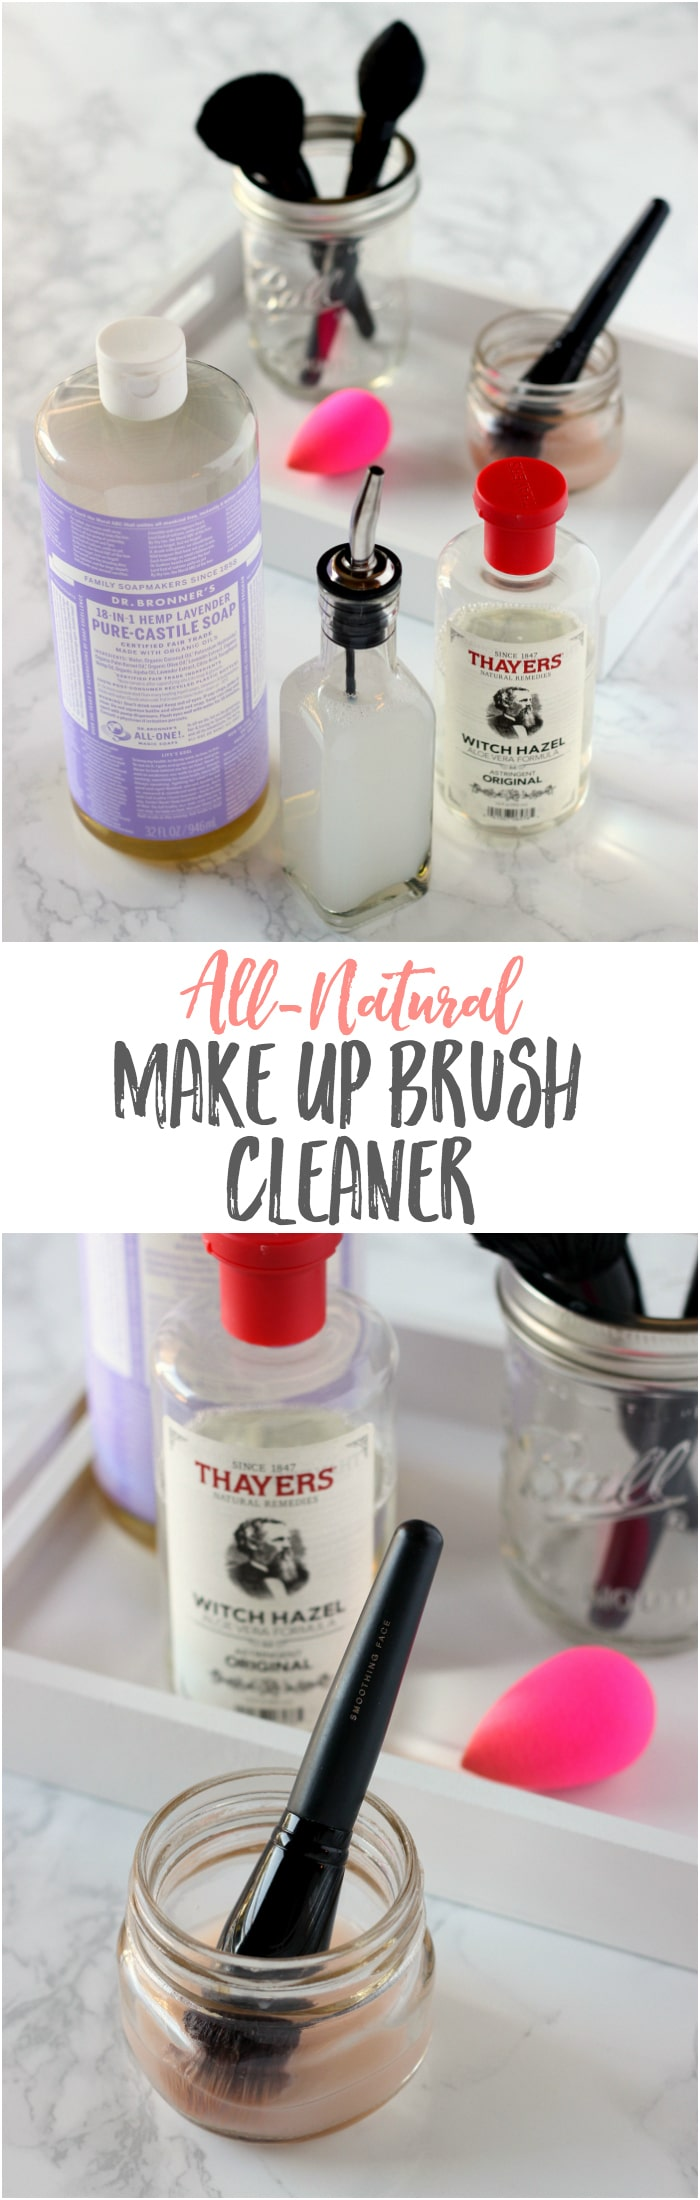 all-natural-make-up-brush-cleaner-pin